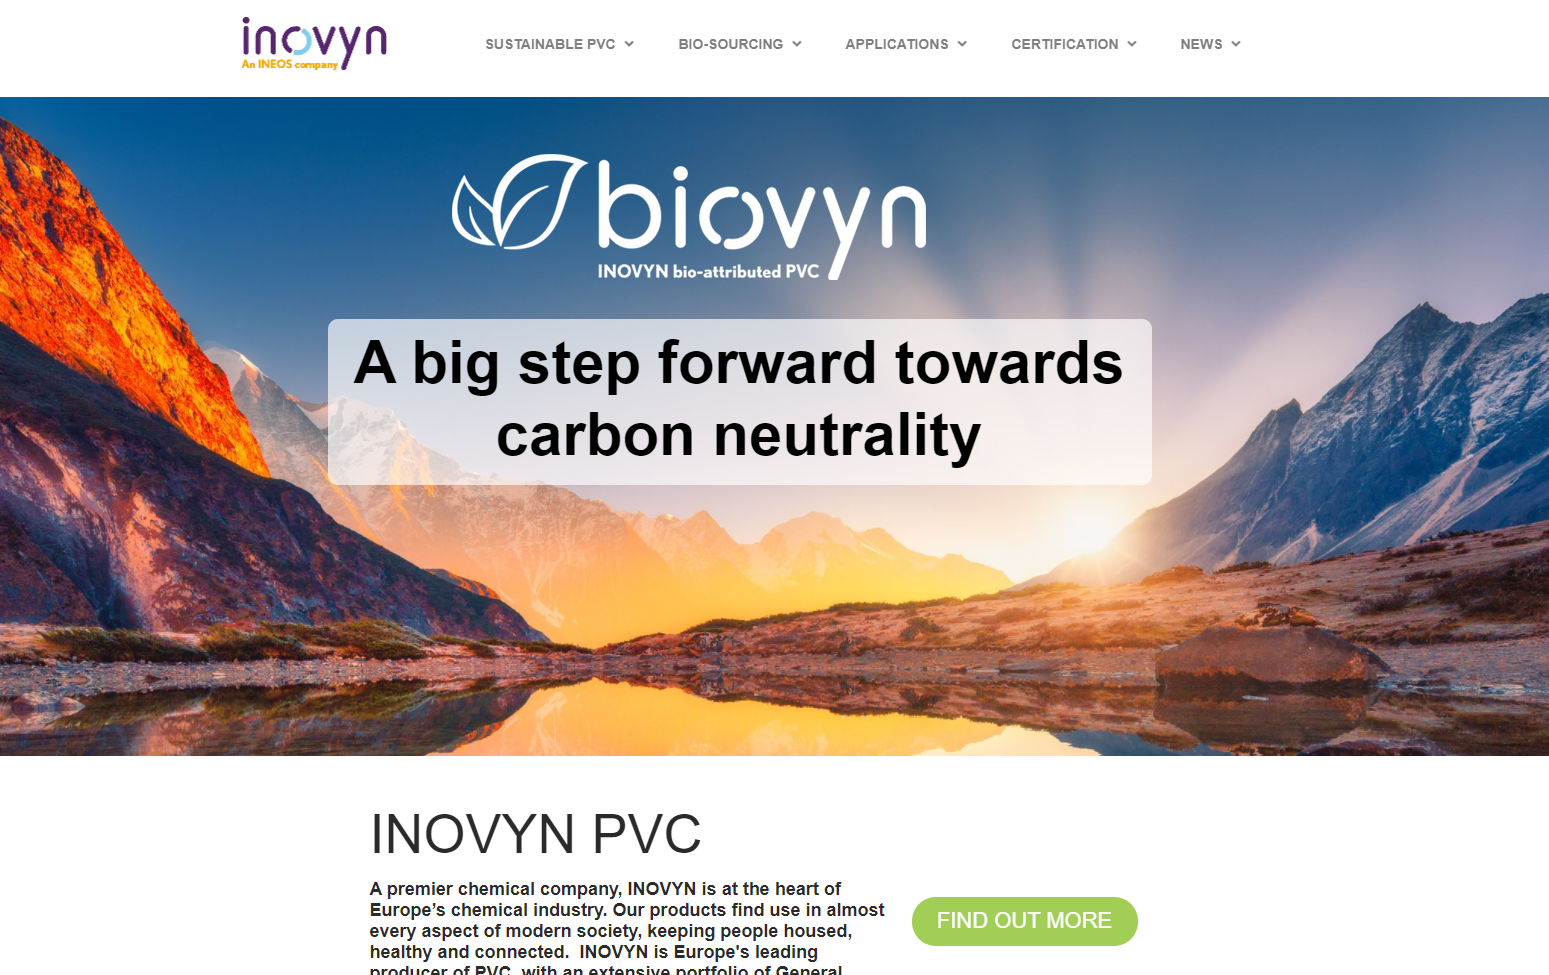 INOVYN launches showcase website for BIOVYN™, world's first commercially available bio-attributed PVC